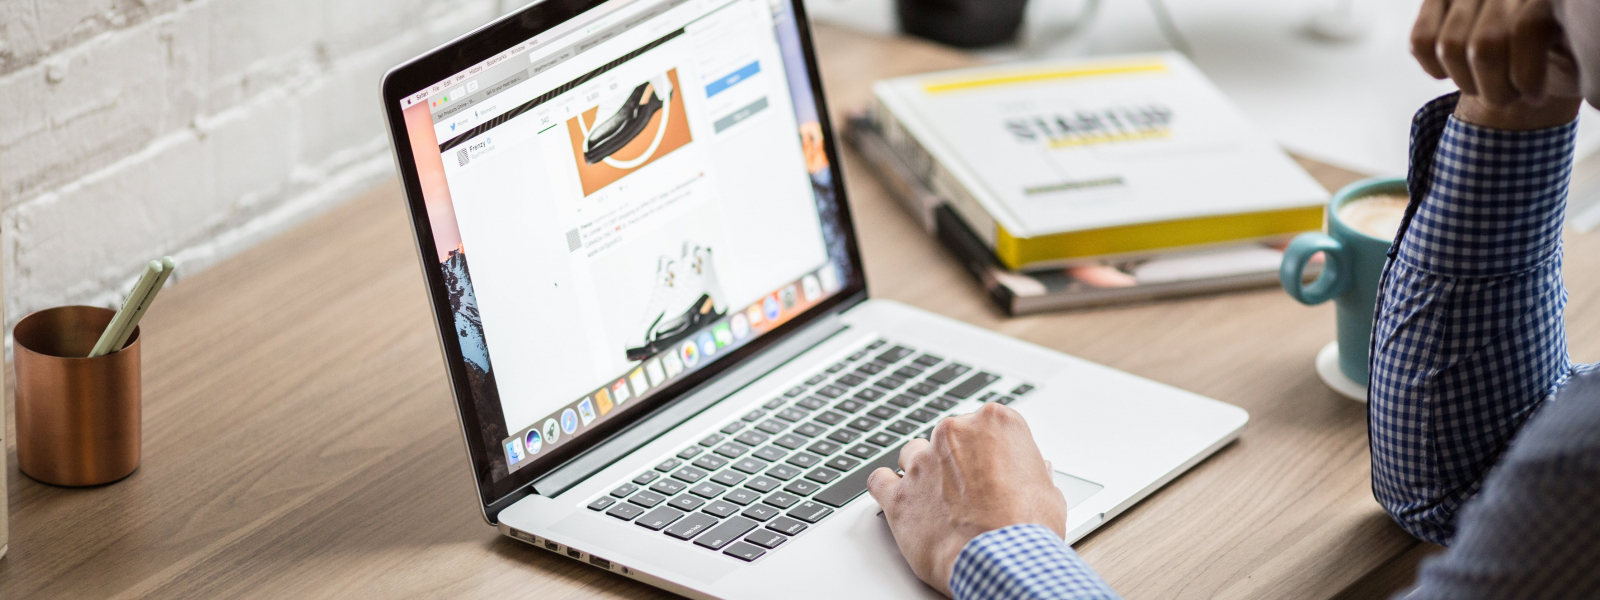 Online Courses | Portsmouth College